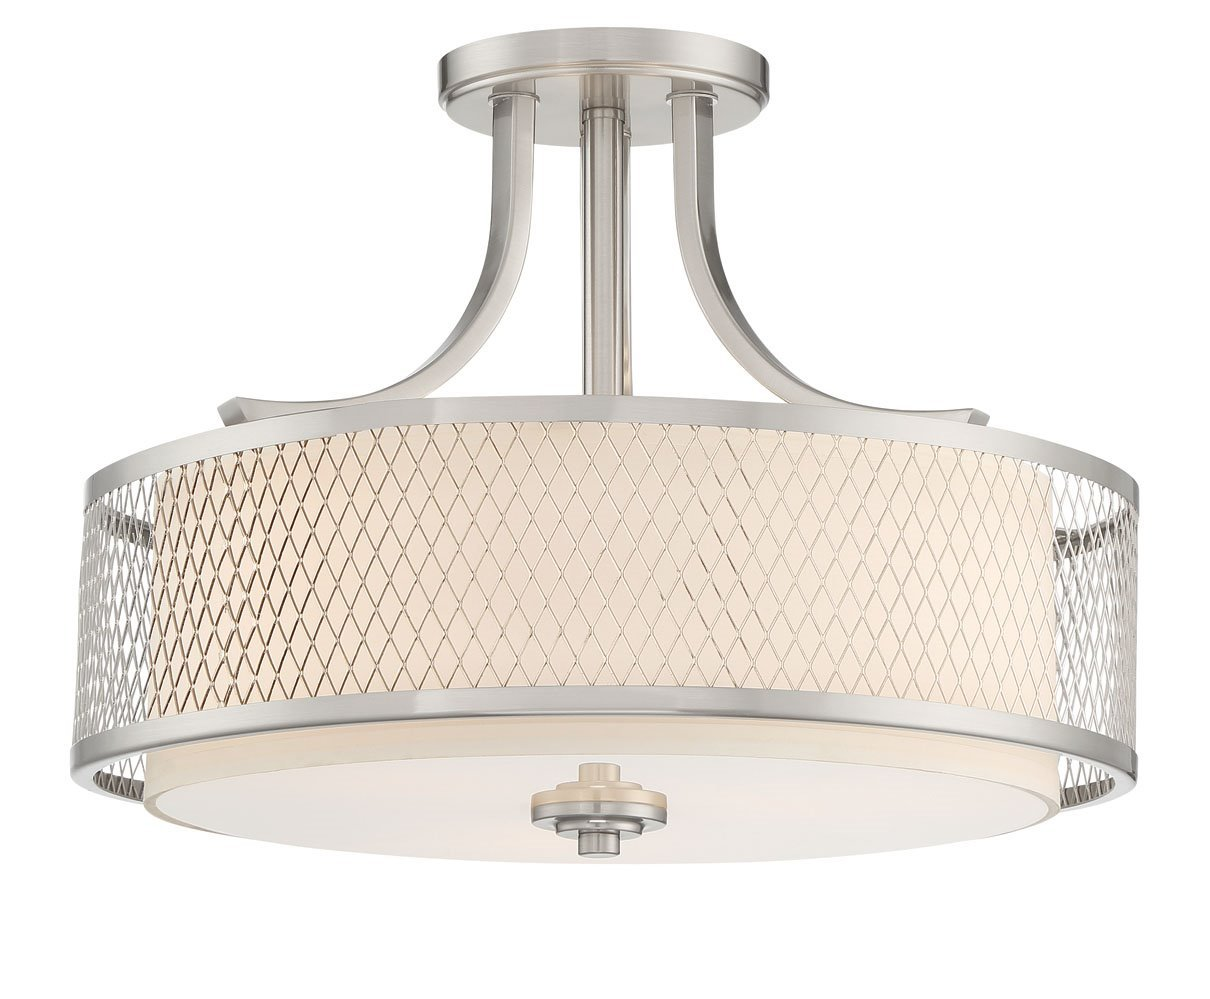 "Kira Home Linx 16"" 3-Light Semi-Flush Mount Ceiling Light Fixture + Outer Mesh Shade and Inner White Fabric Shade, Brushed Nickel Finish"